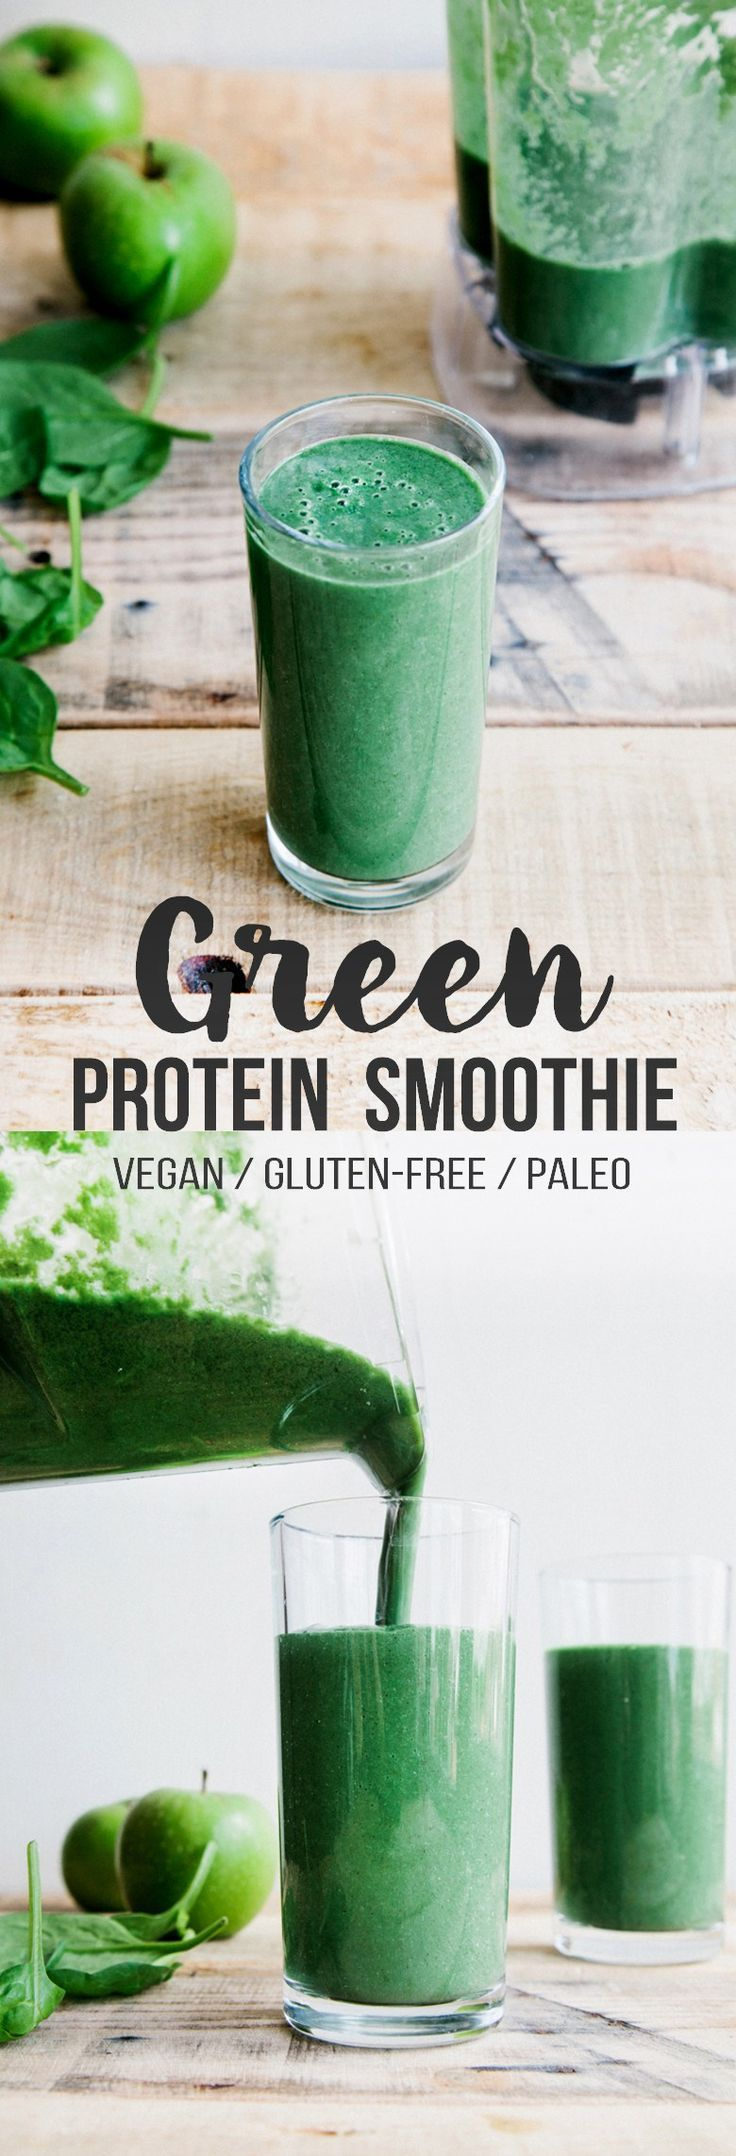 Green Protein Smoothie. Healthy for all of the family and a great way to boost the immune system. Why be just another proud dad, when you can be a proud dad full of anti-oxidants and phytonutrients?